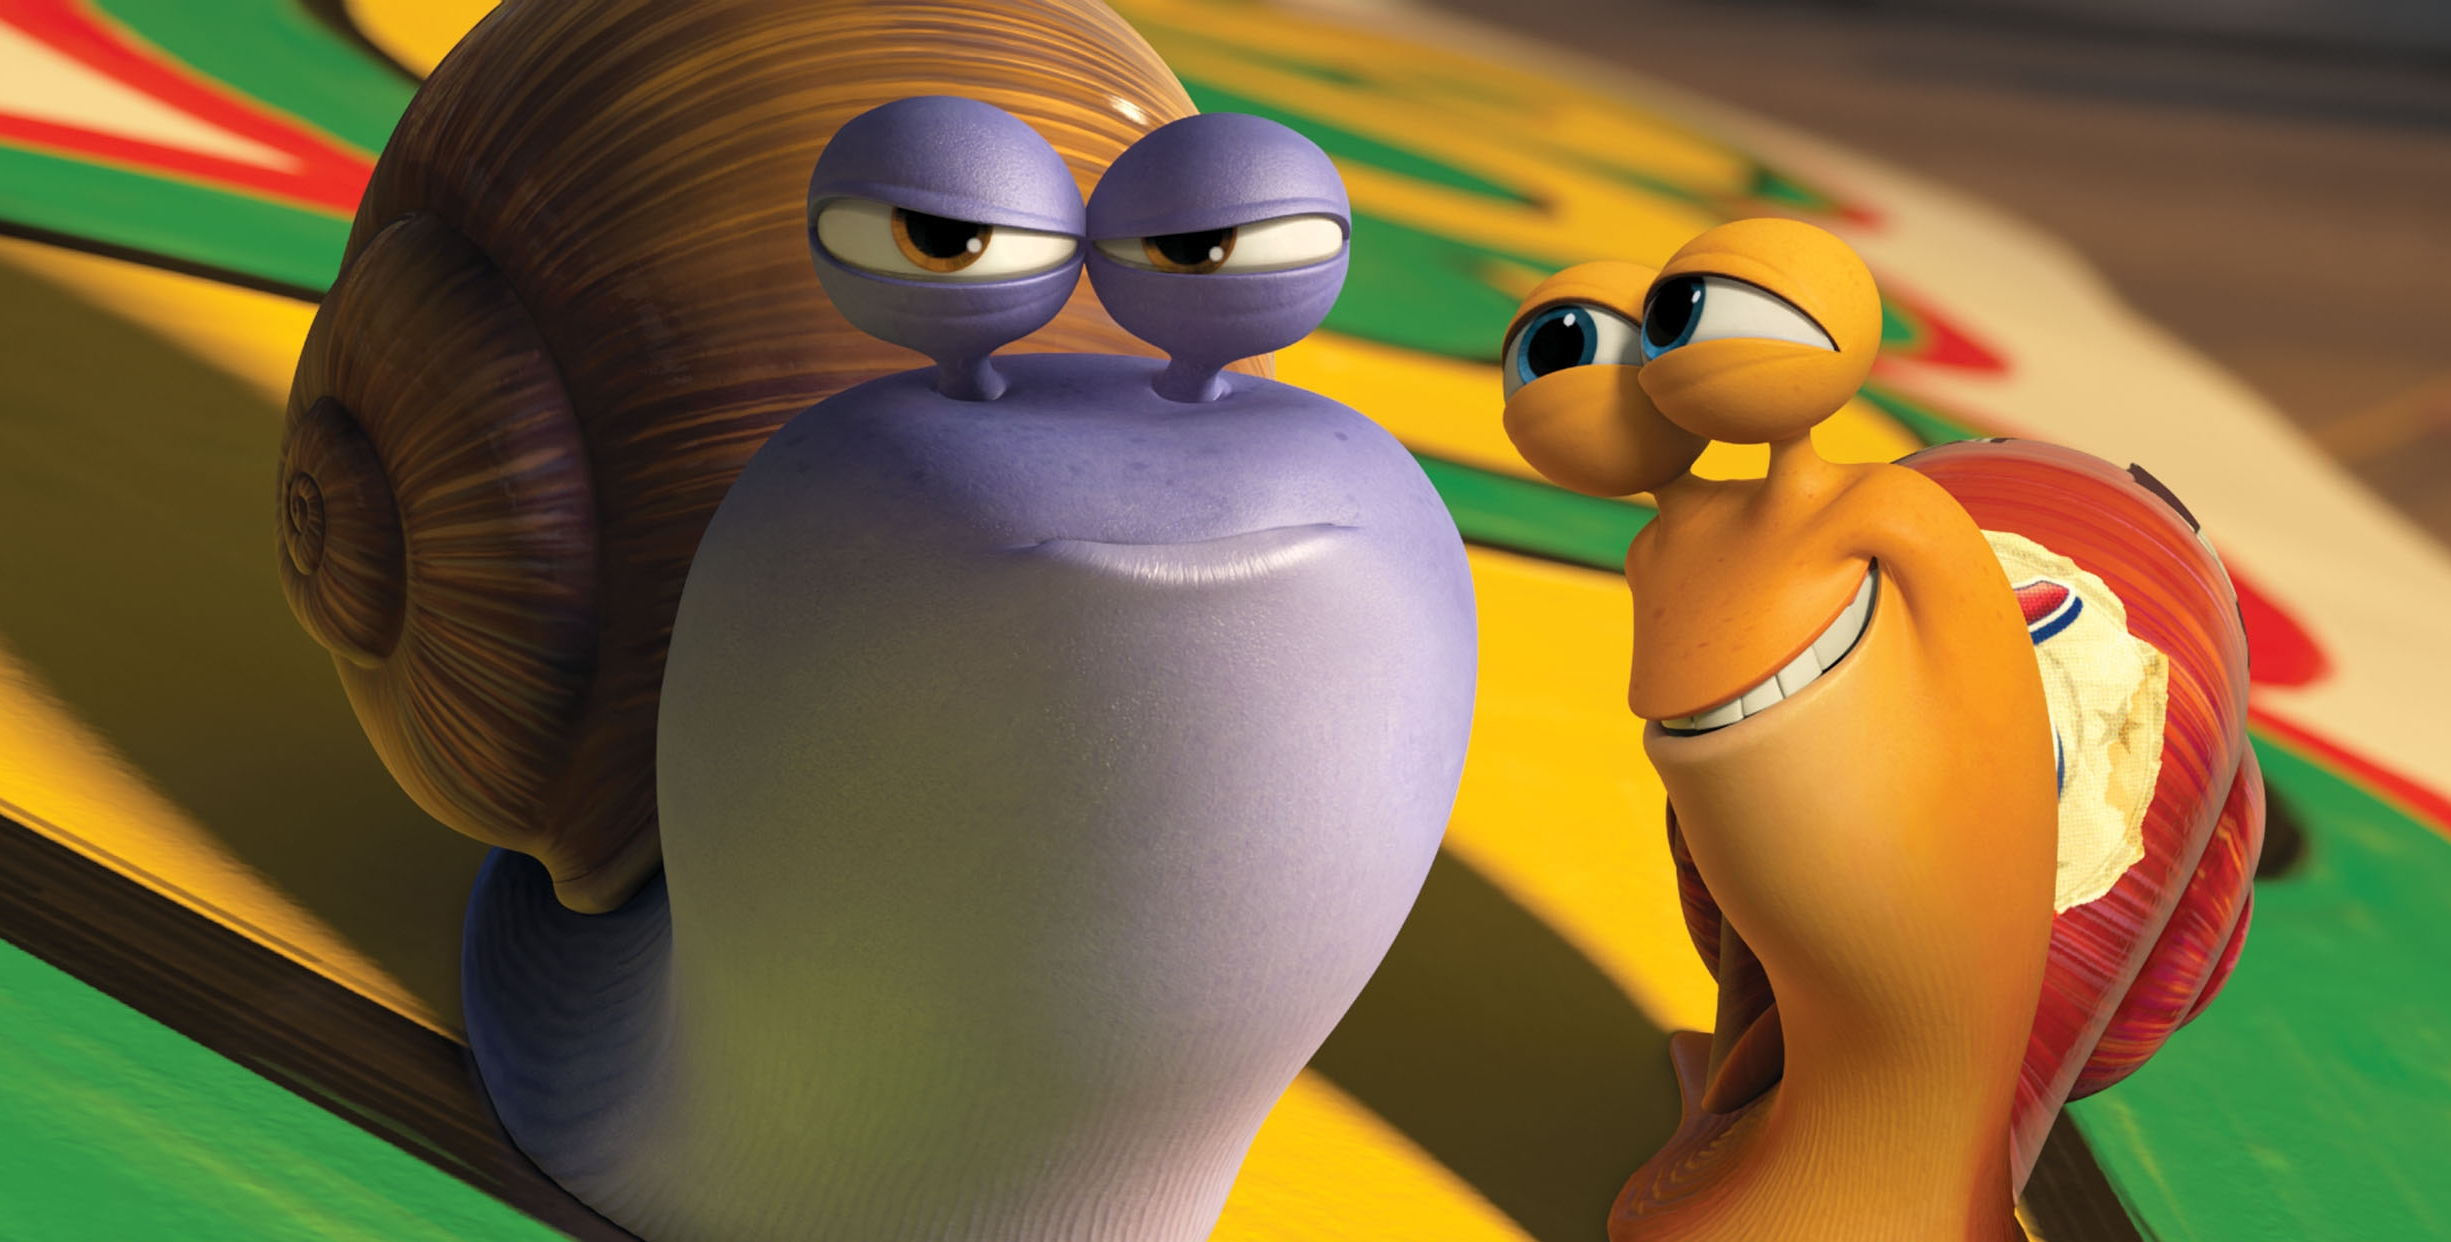 """Chet, voiced by Paul Giamatti, left, and Turbo, voiced by Ryan Reynolds in a scene from the animated movie """"Turbo."""""""